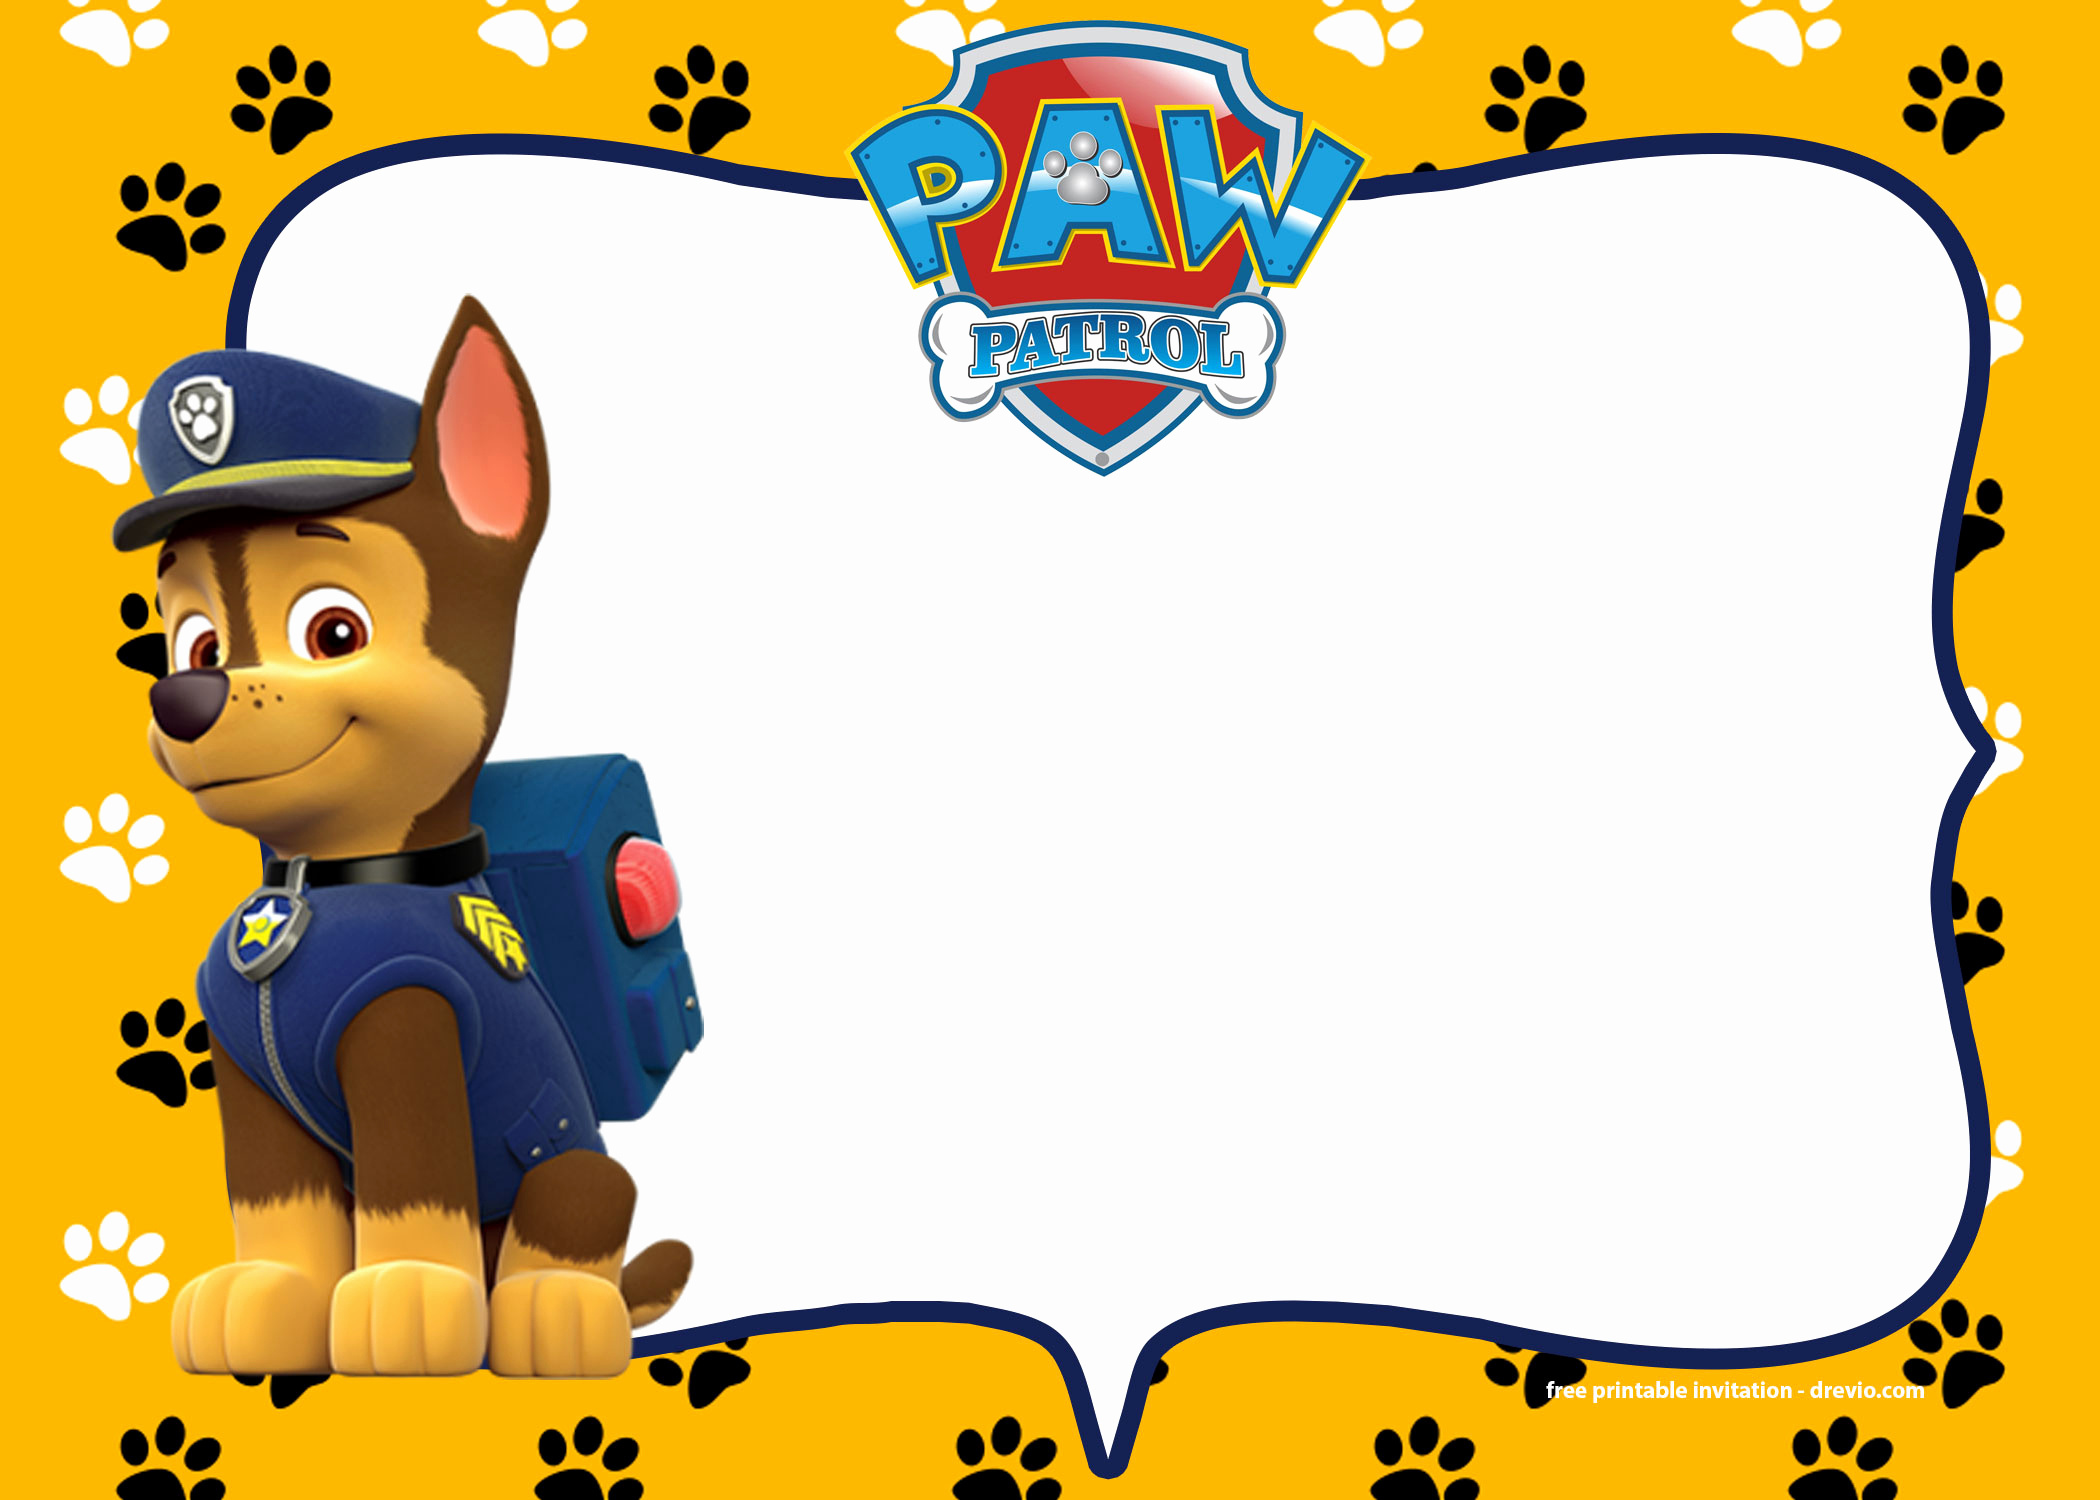 Paw Patrol Invitation Template Blank Inspirational Paw Patrol Invitation Template – Blank Printable – Chase